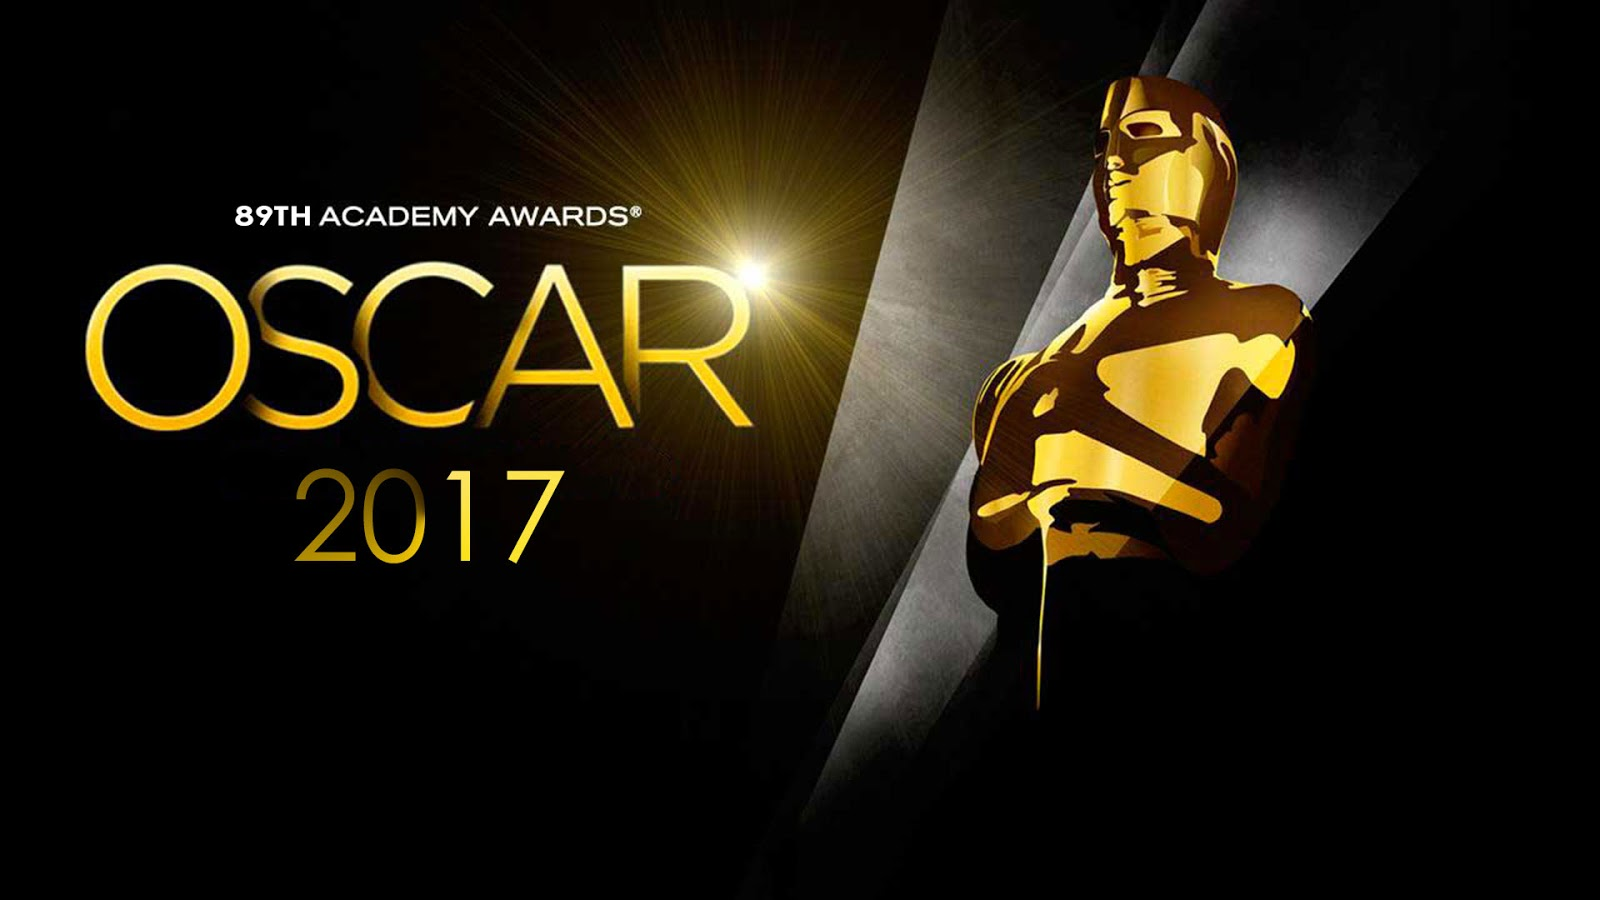 The Best Looks at Oscars 2017